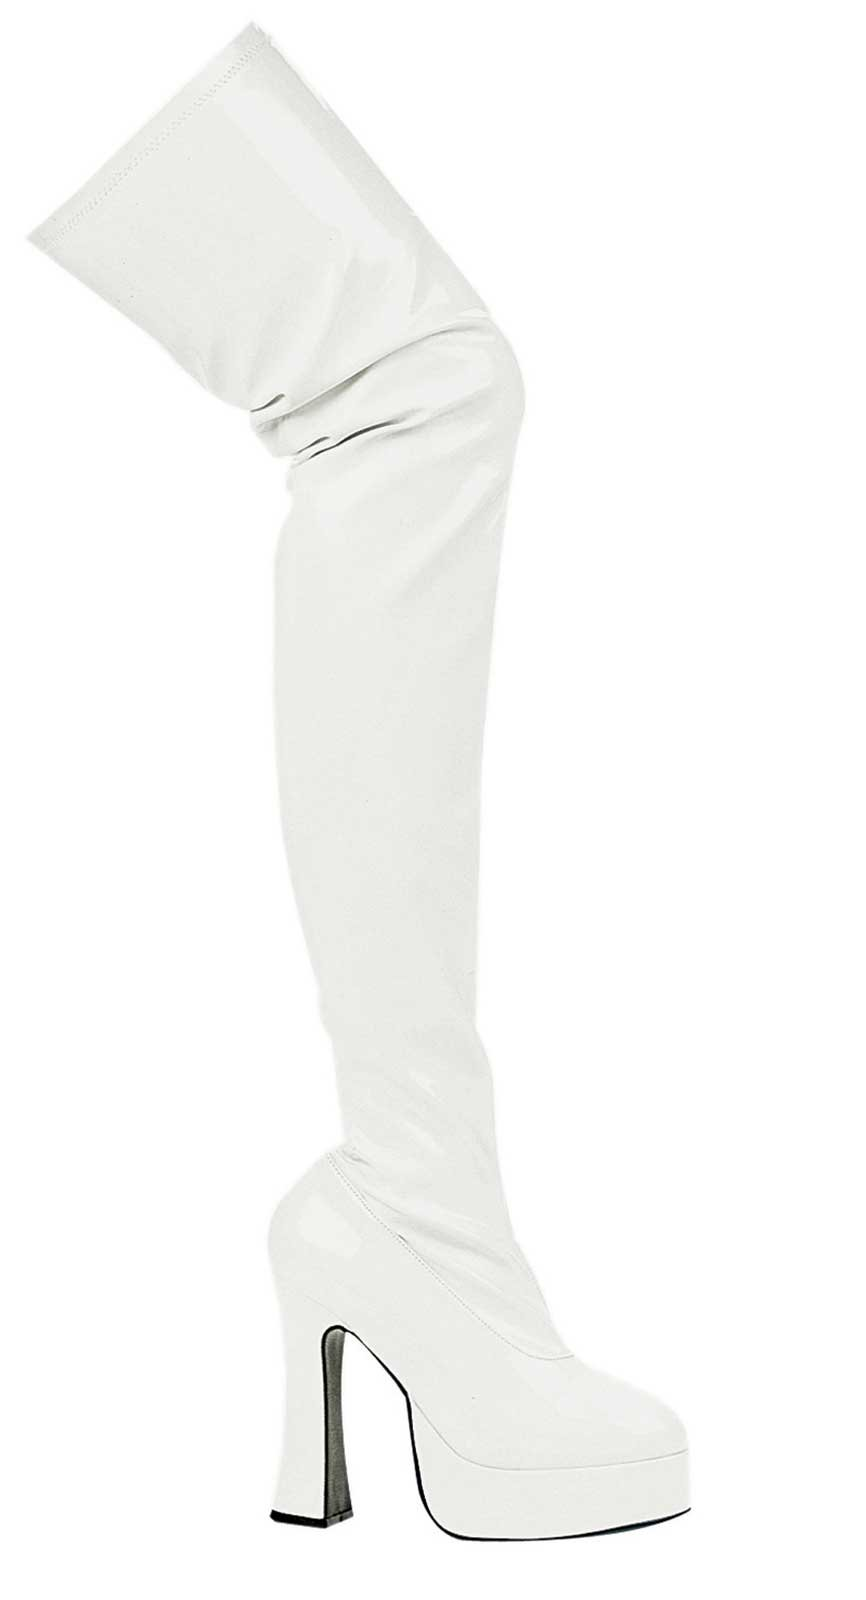 Thrill White Patent Thigh High Adult Boots